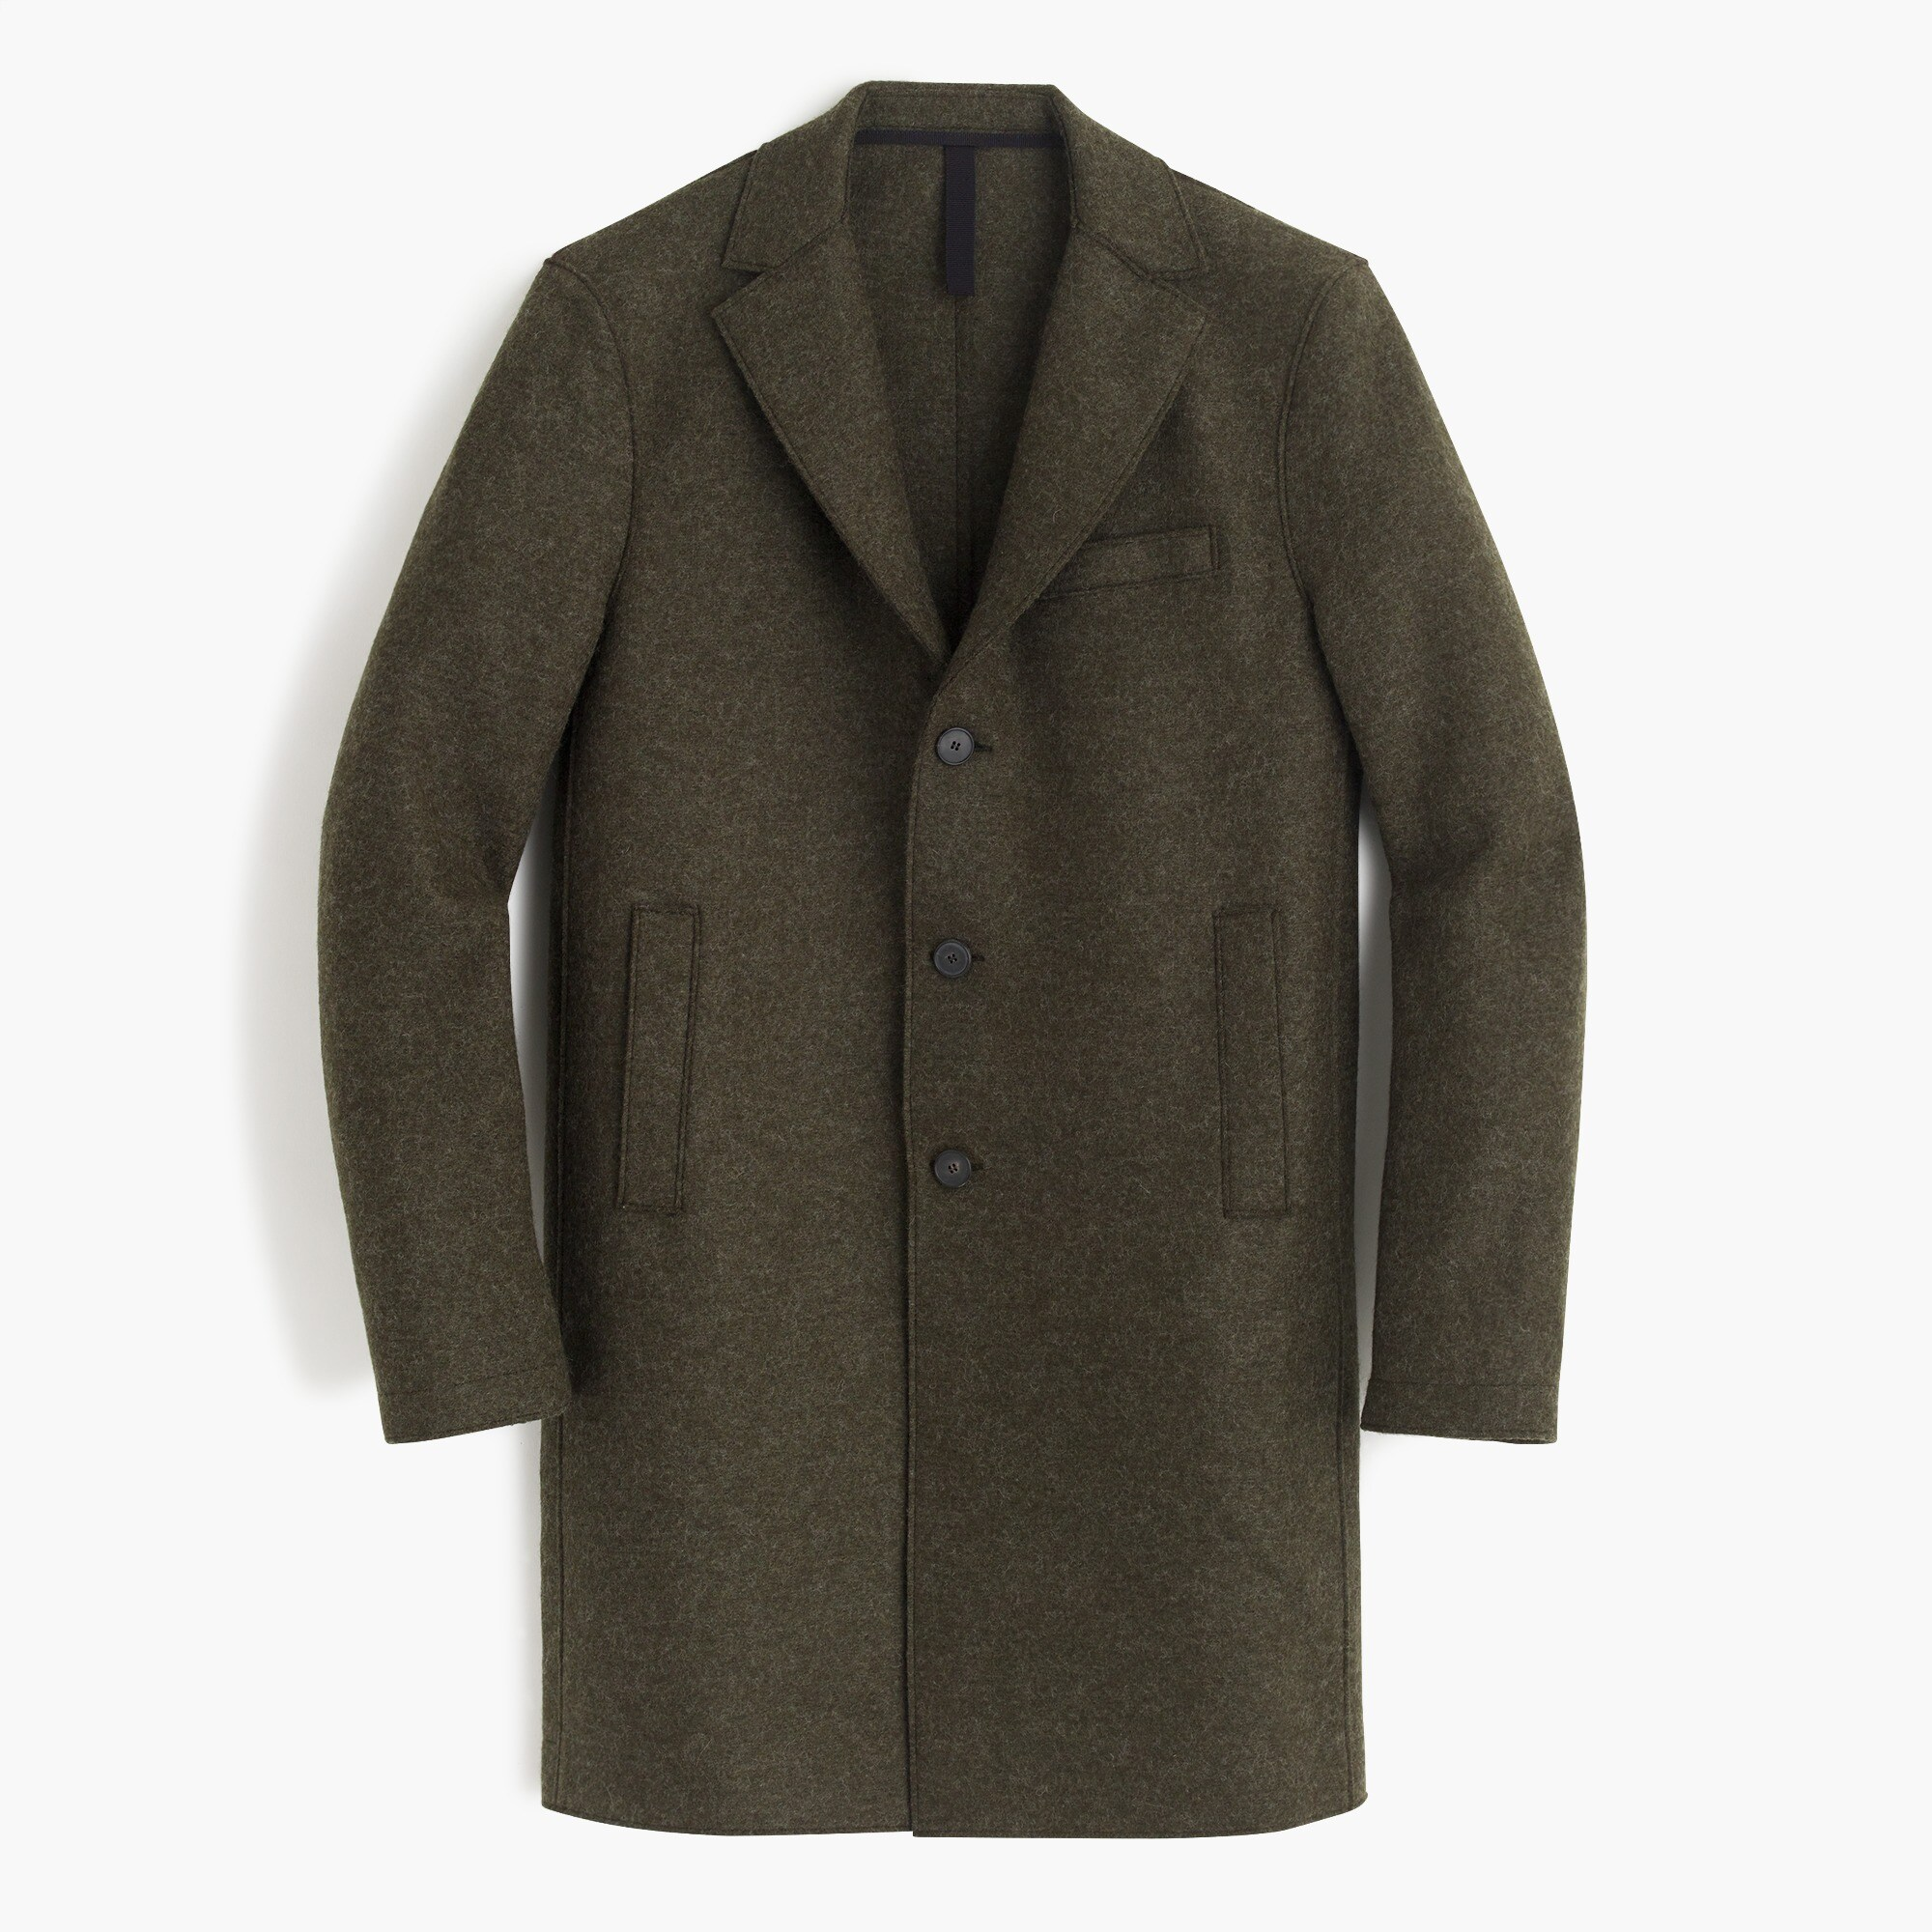 Harris Wharf London™ pressed wool topcoat in olive men coats & jackets c